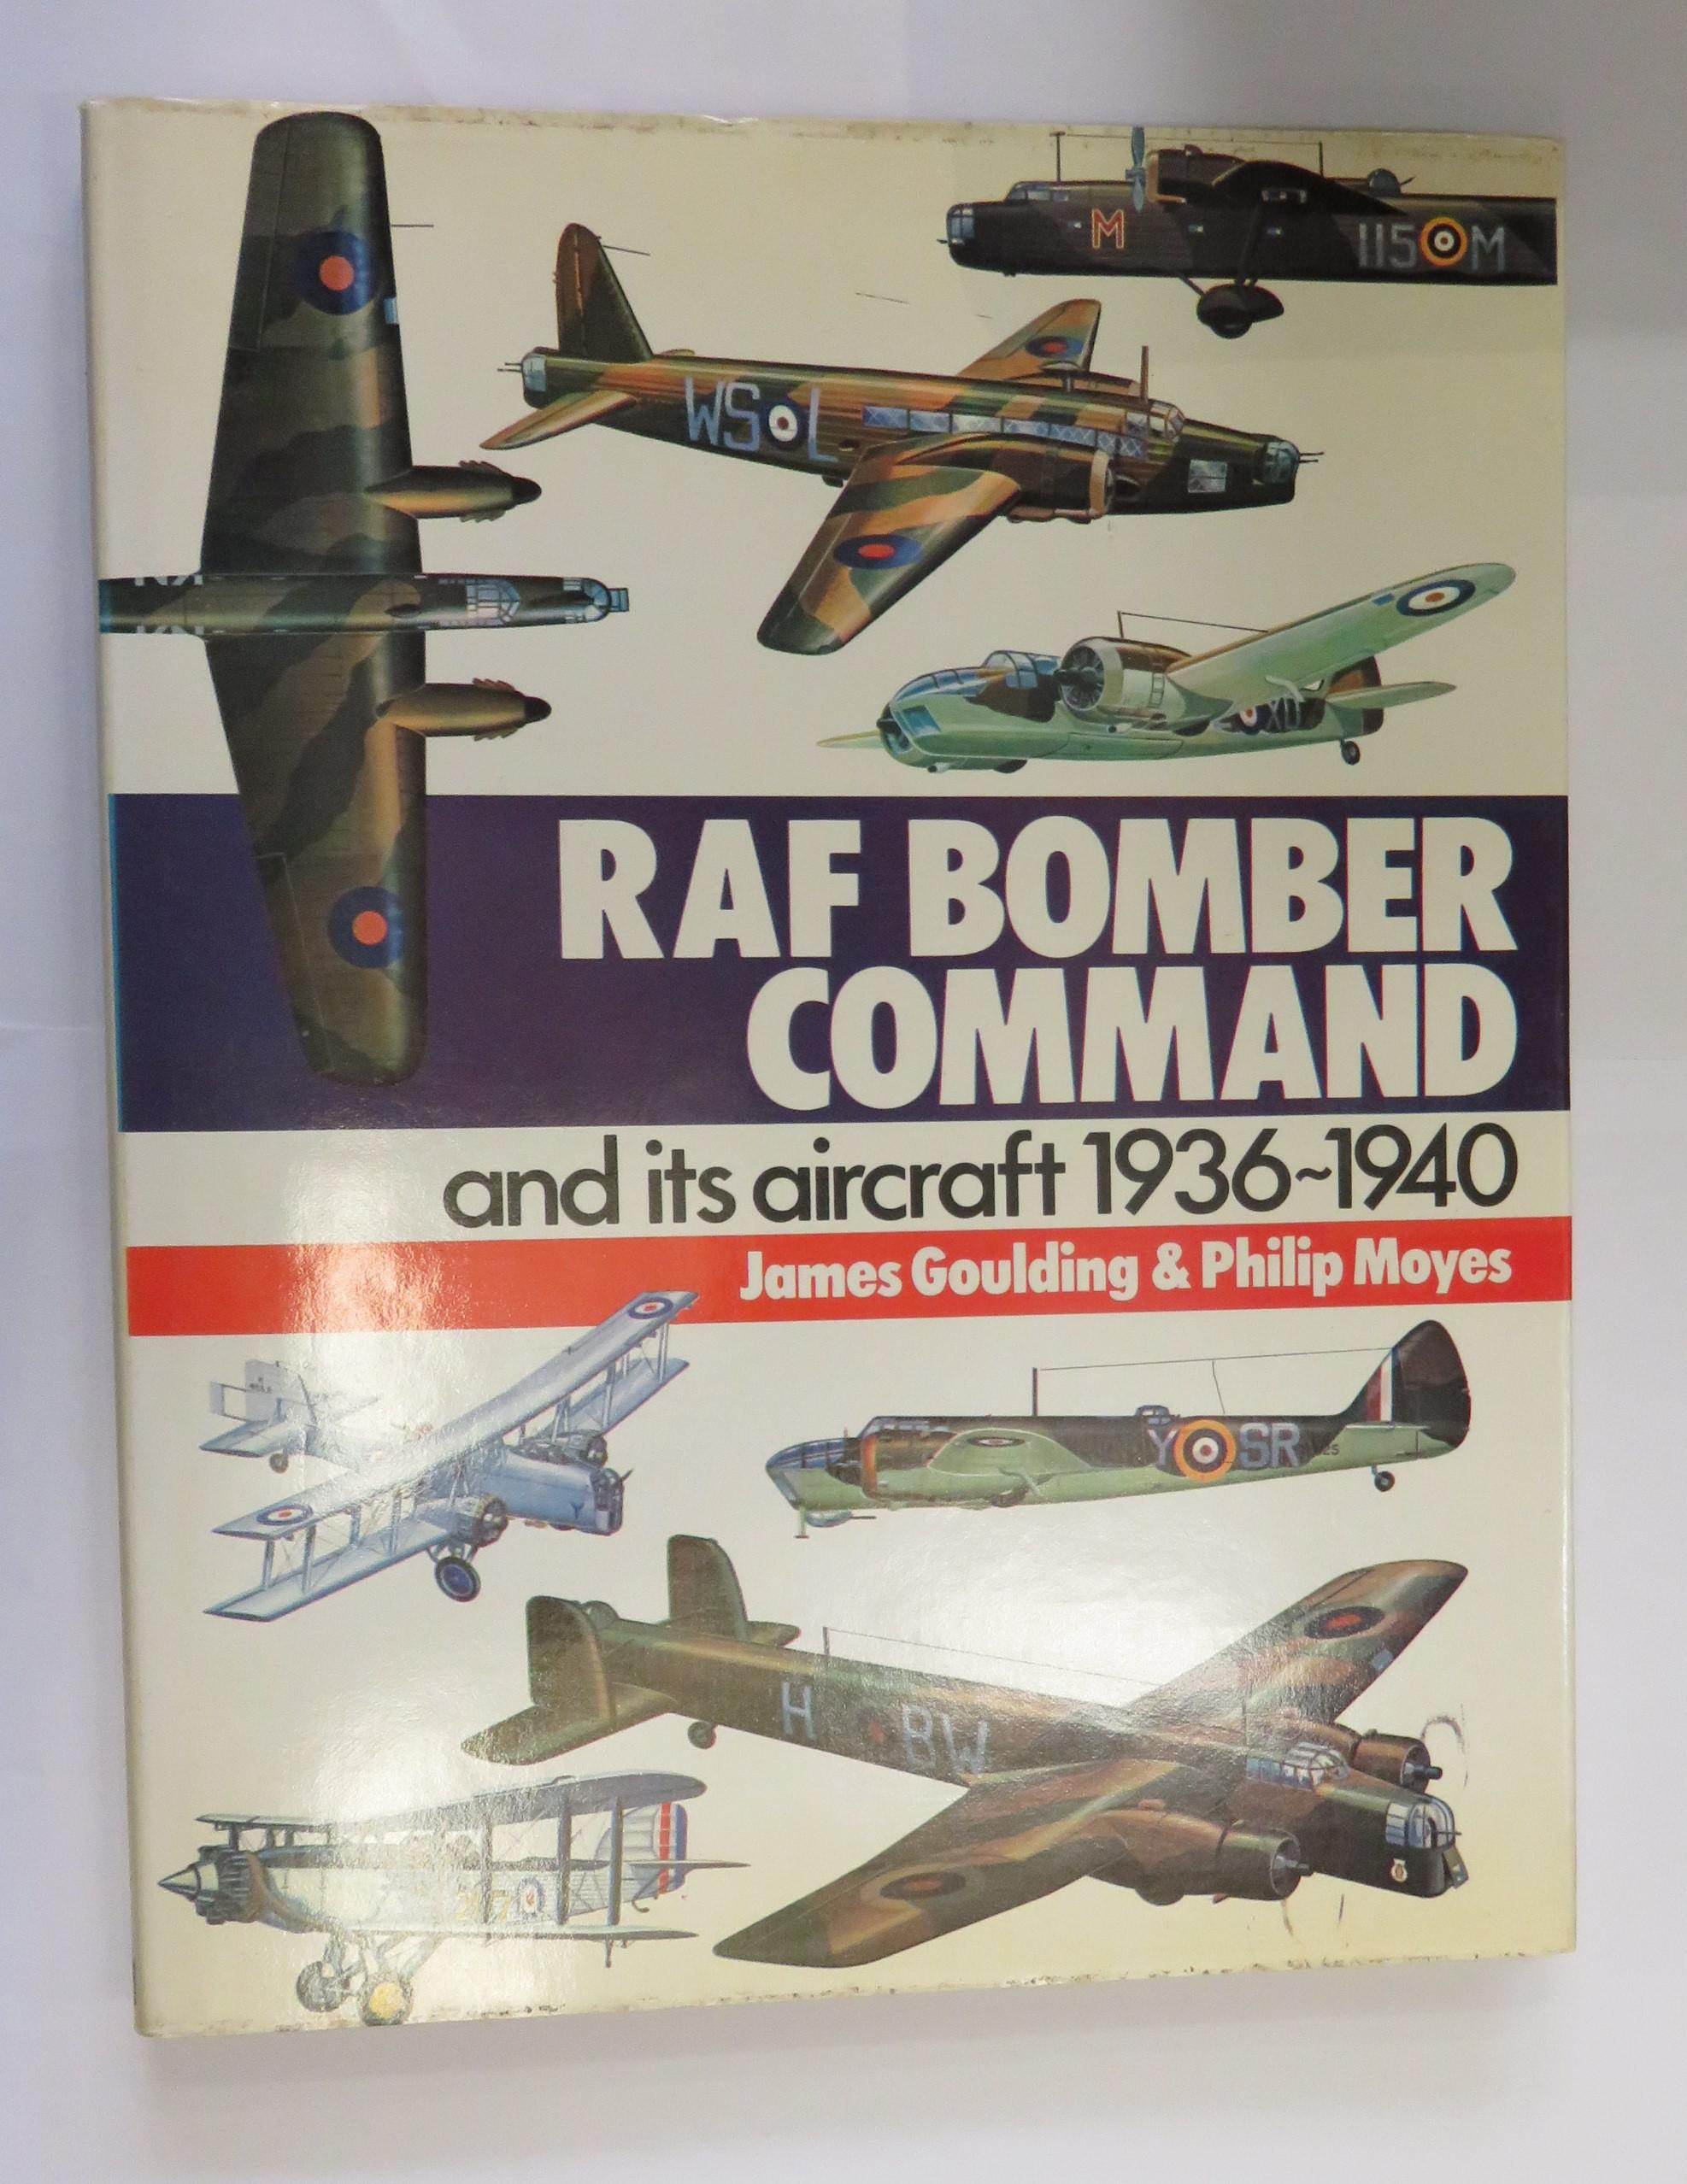 RAF Bomber Command and its aircraft 1936-1940